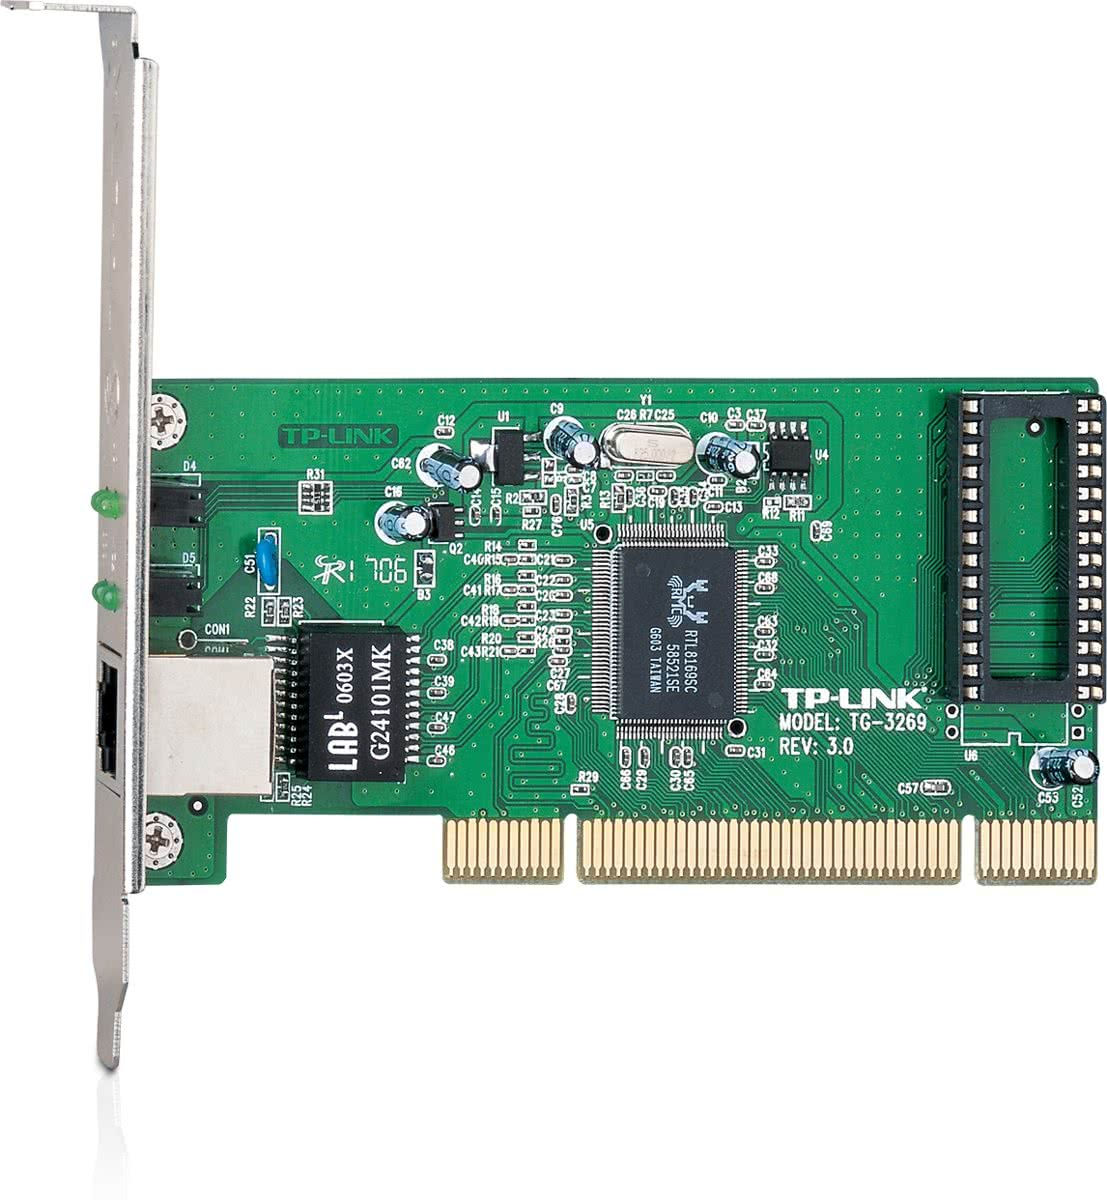 TG-3269 - Gigabit Ethernet Adapter